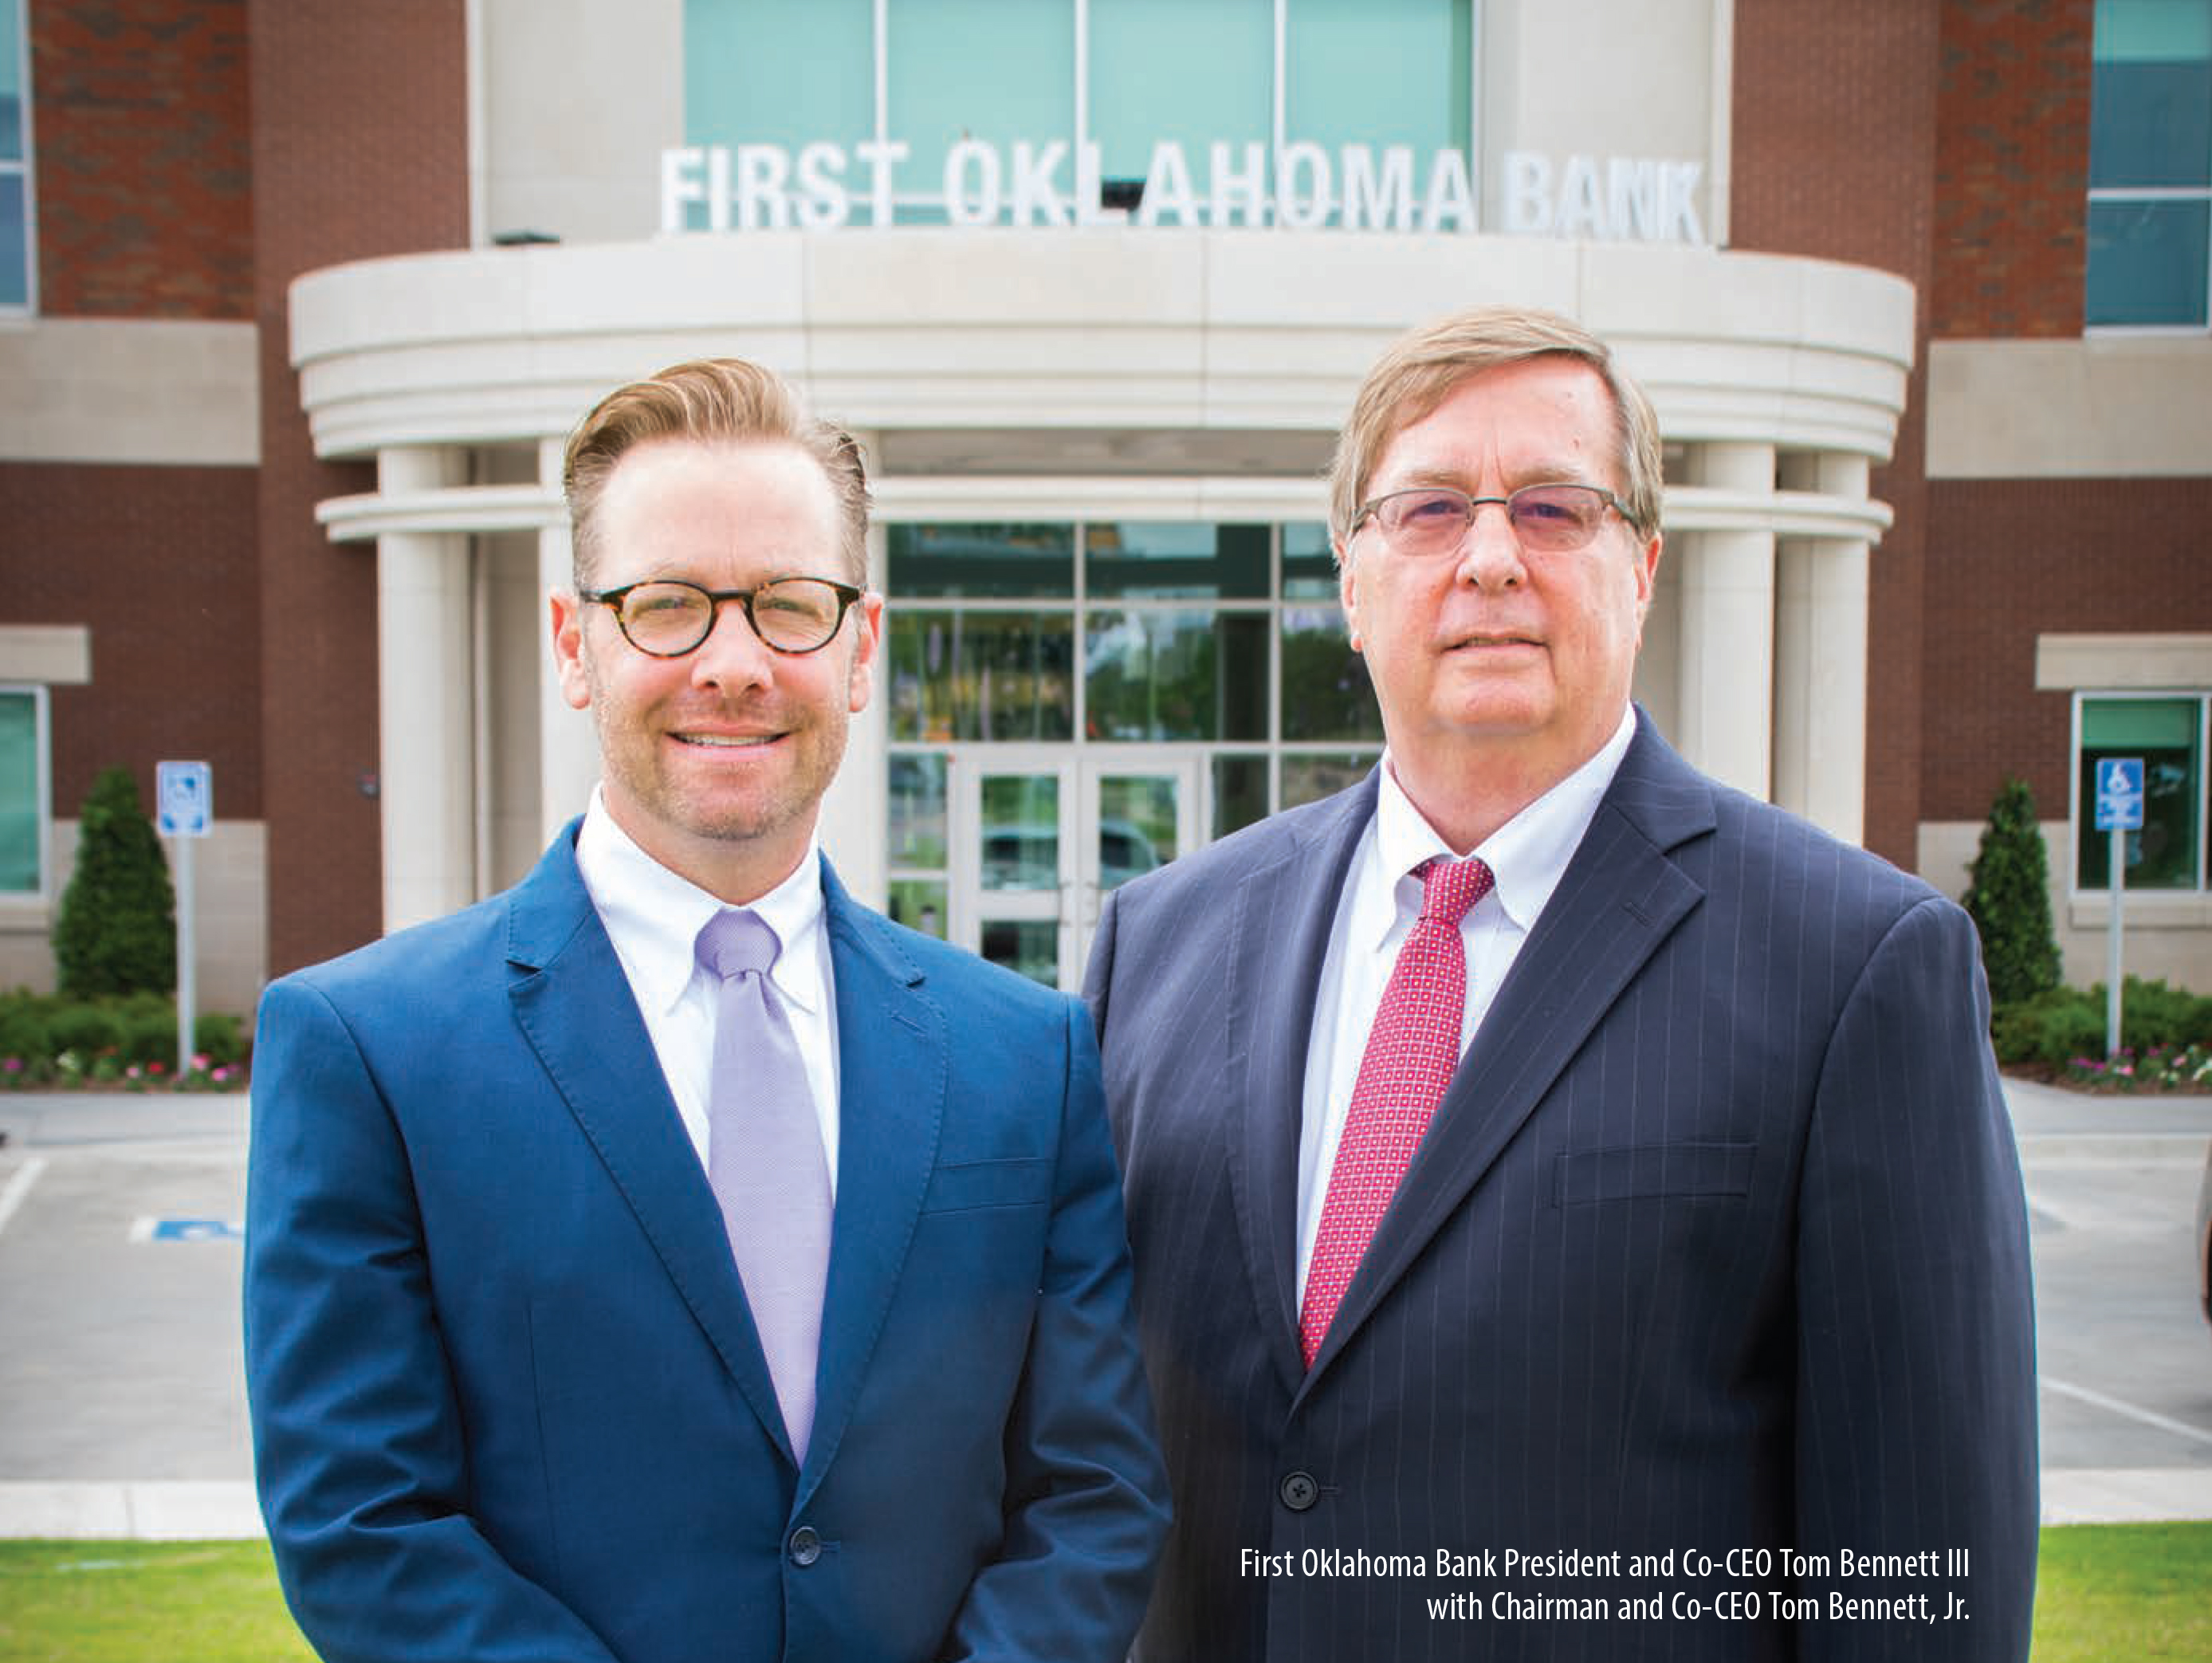 Two men in blue business suits with glasses in front of a building with the words first oklahoma bank.